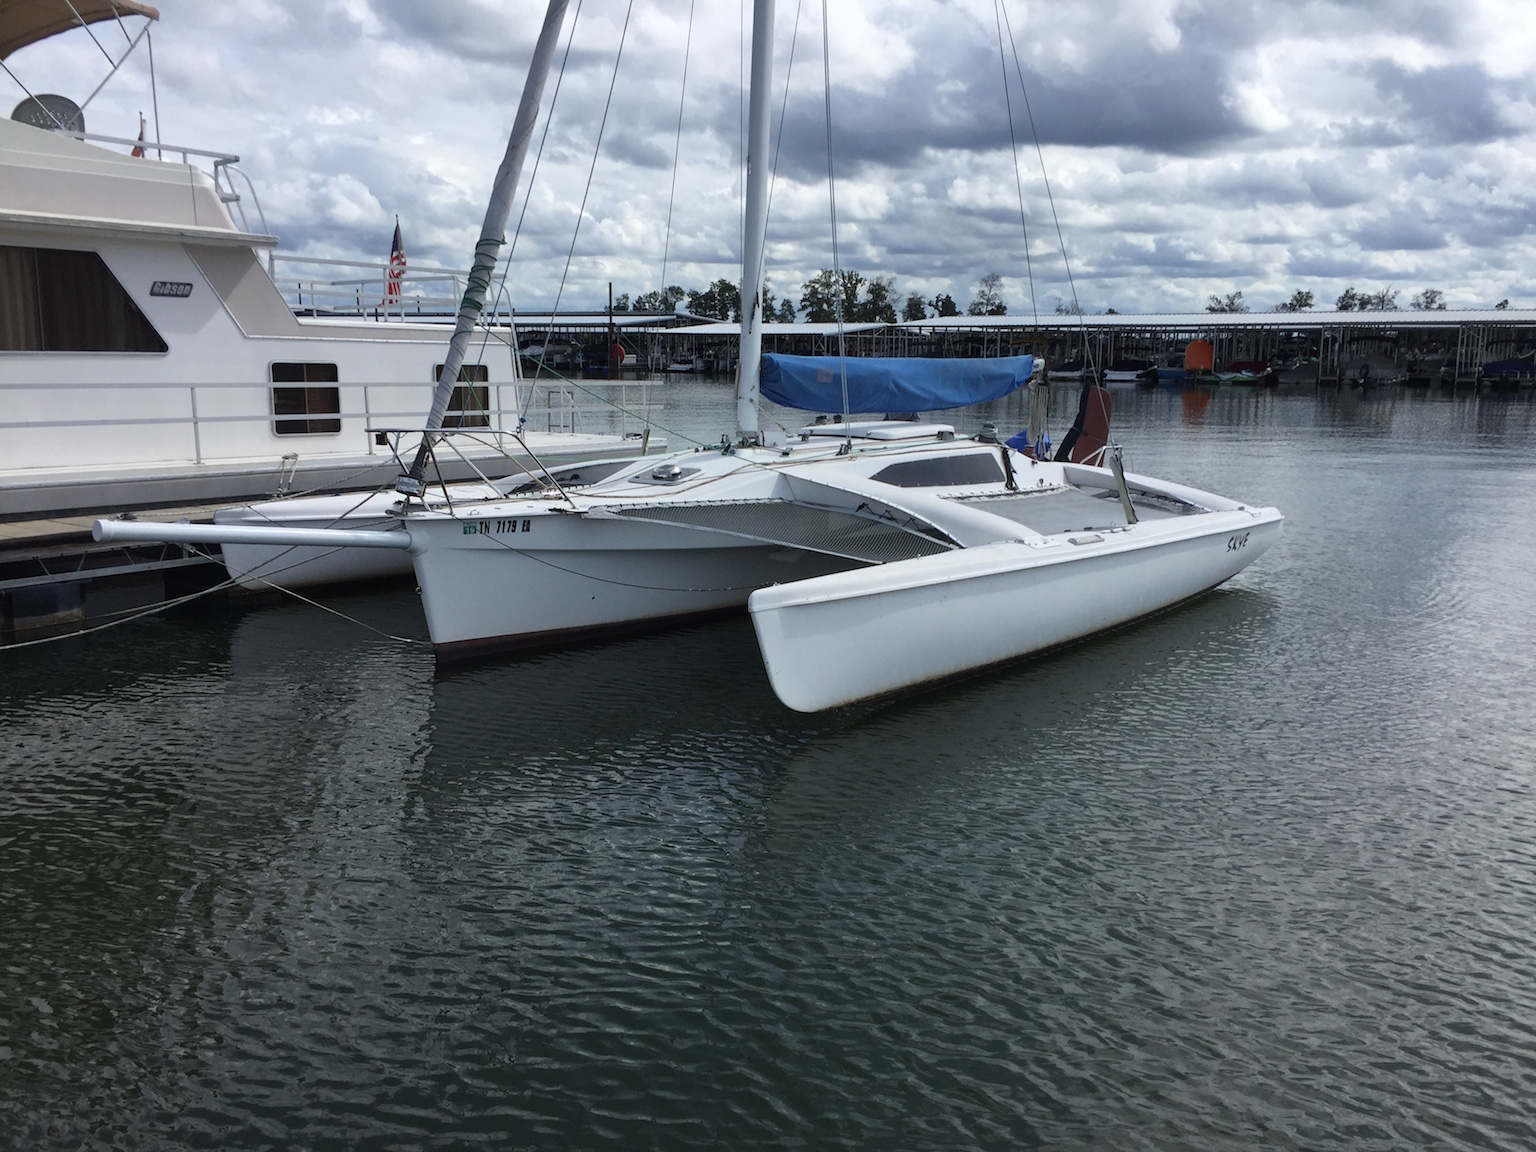 1997 Corsair F-28R trimaran in Nashville, TN $49,500